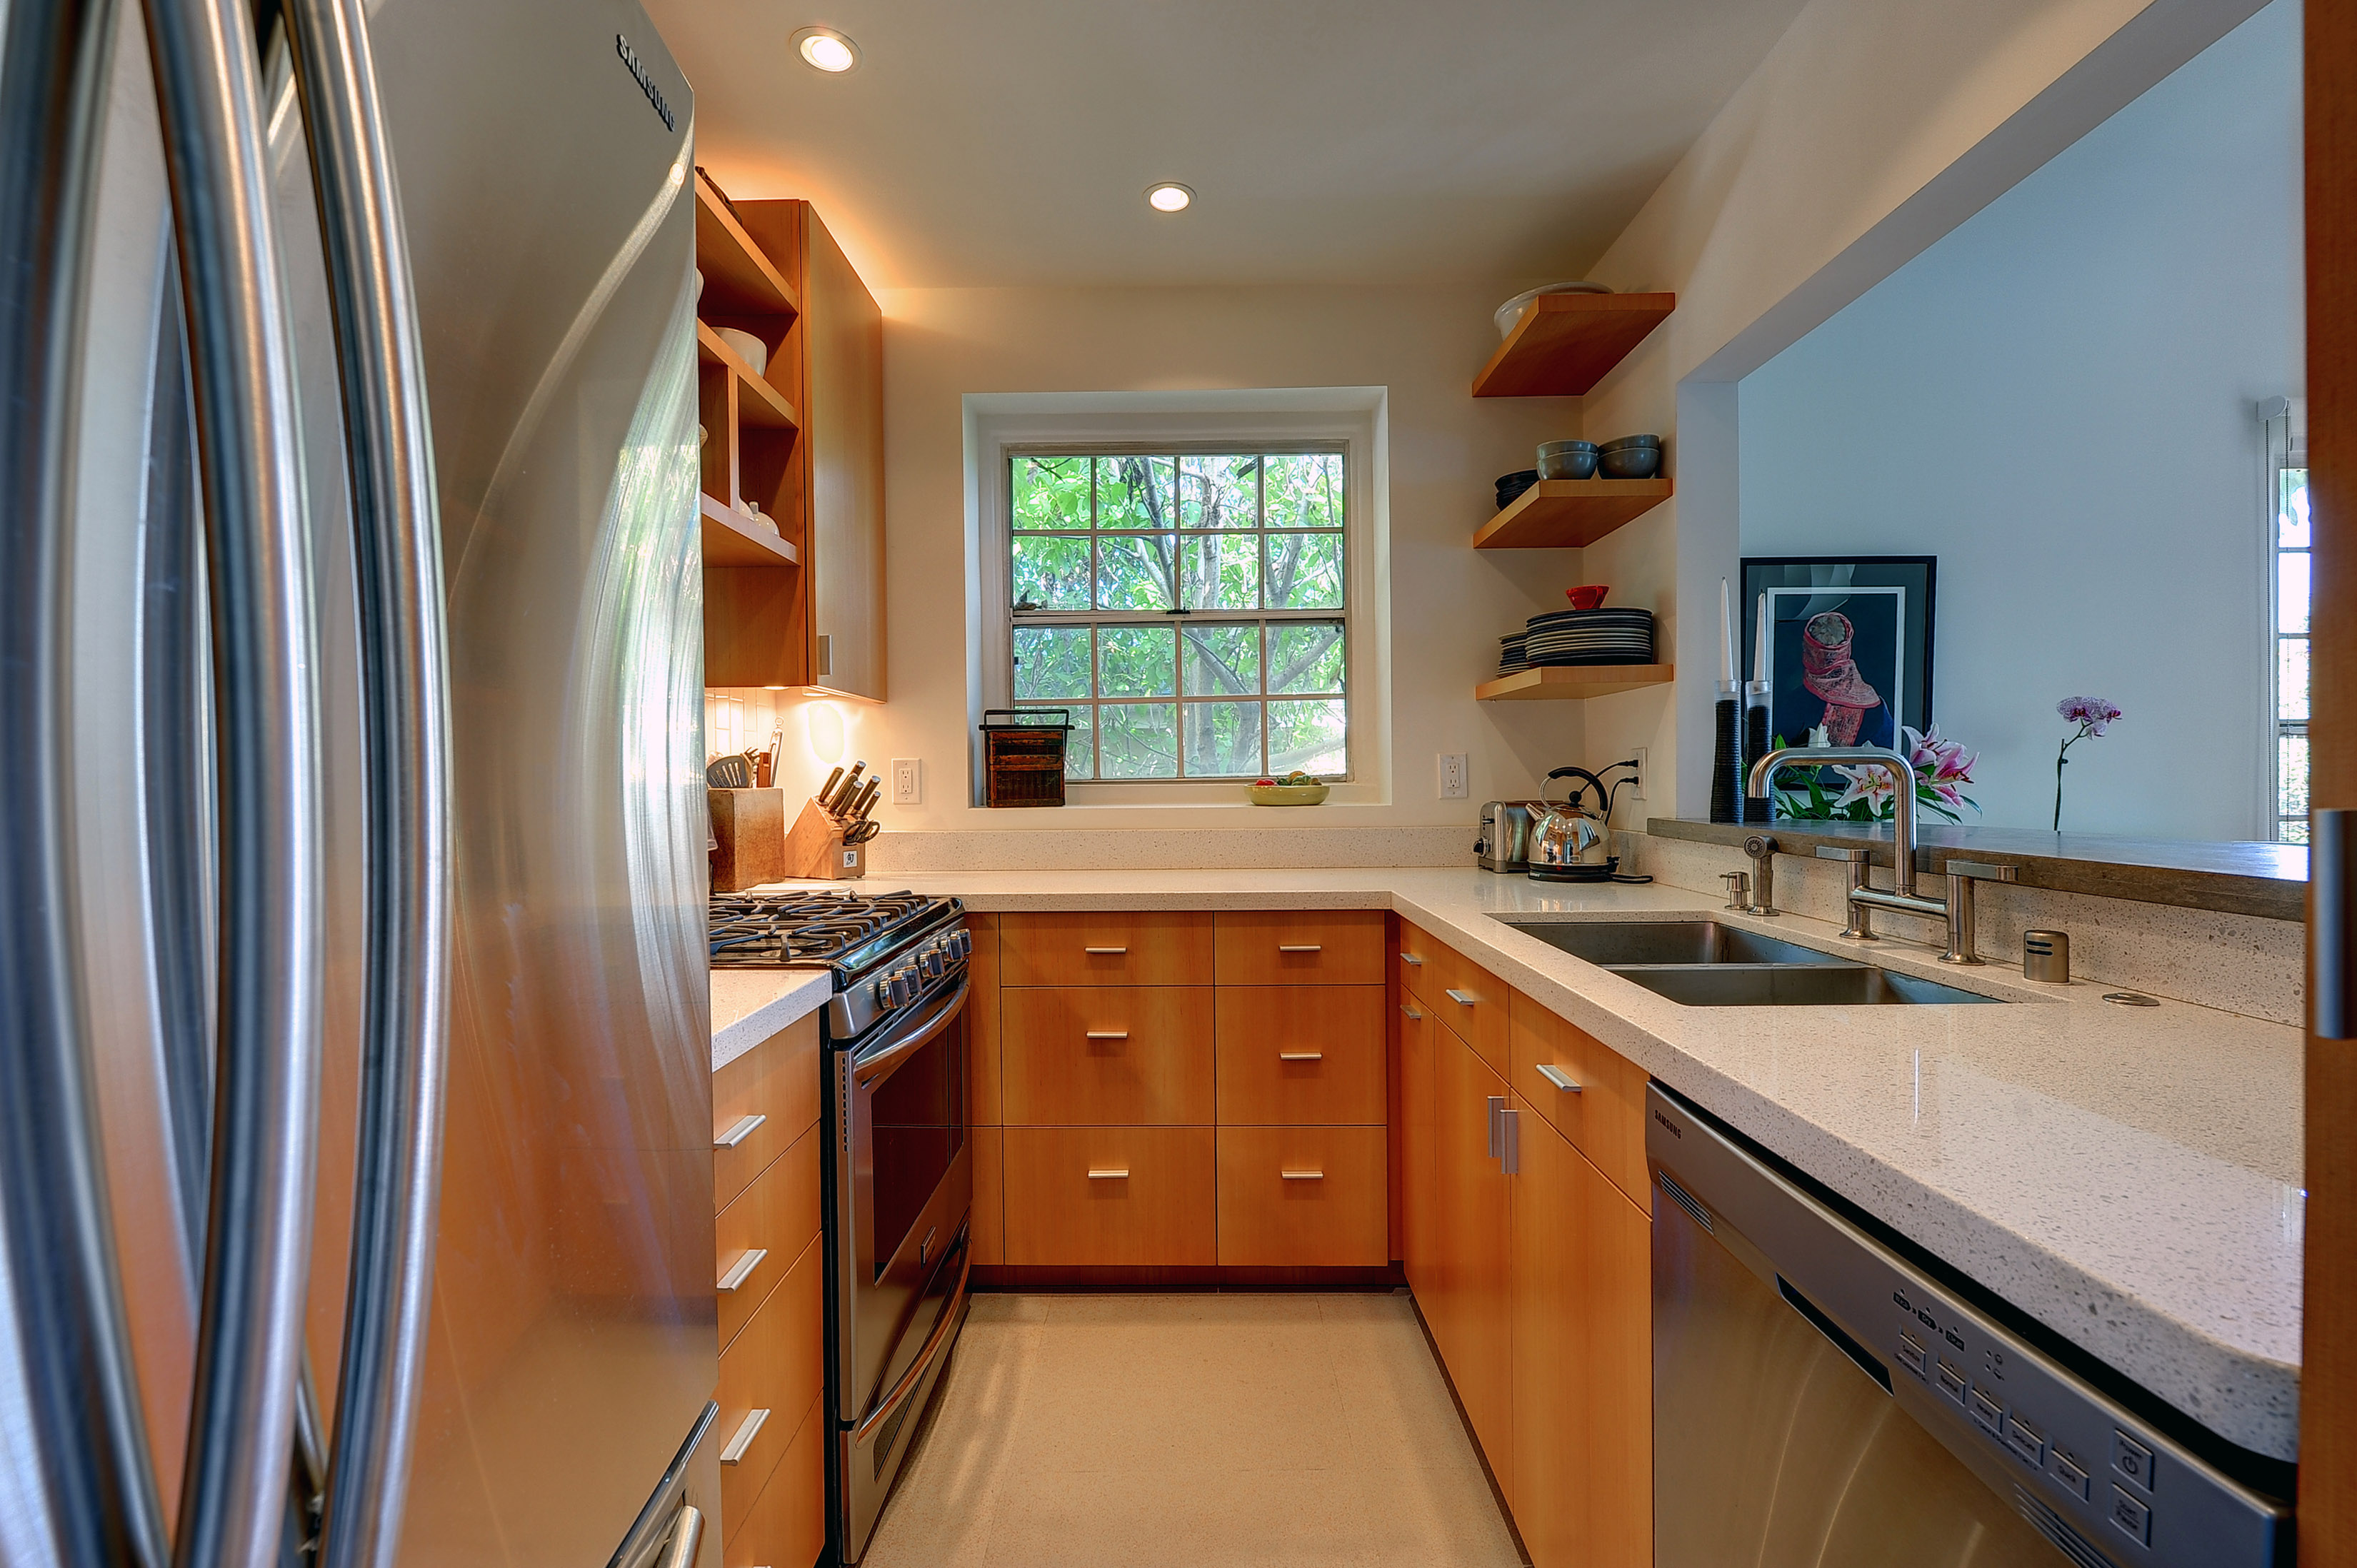 living kitchen small home steel refrigerator wood set square windows double sink shelfs cabinets - Small Homes That Live Large